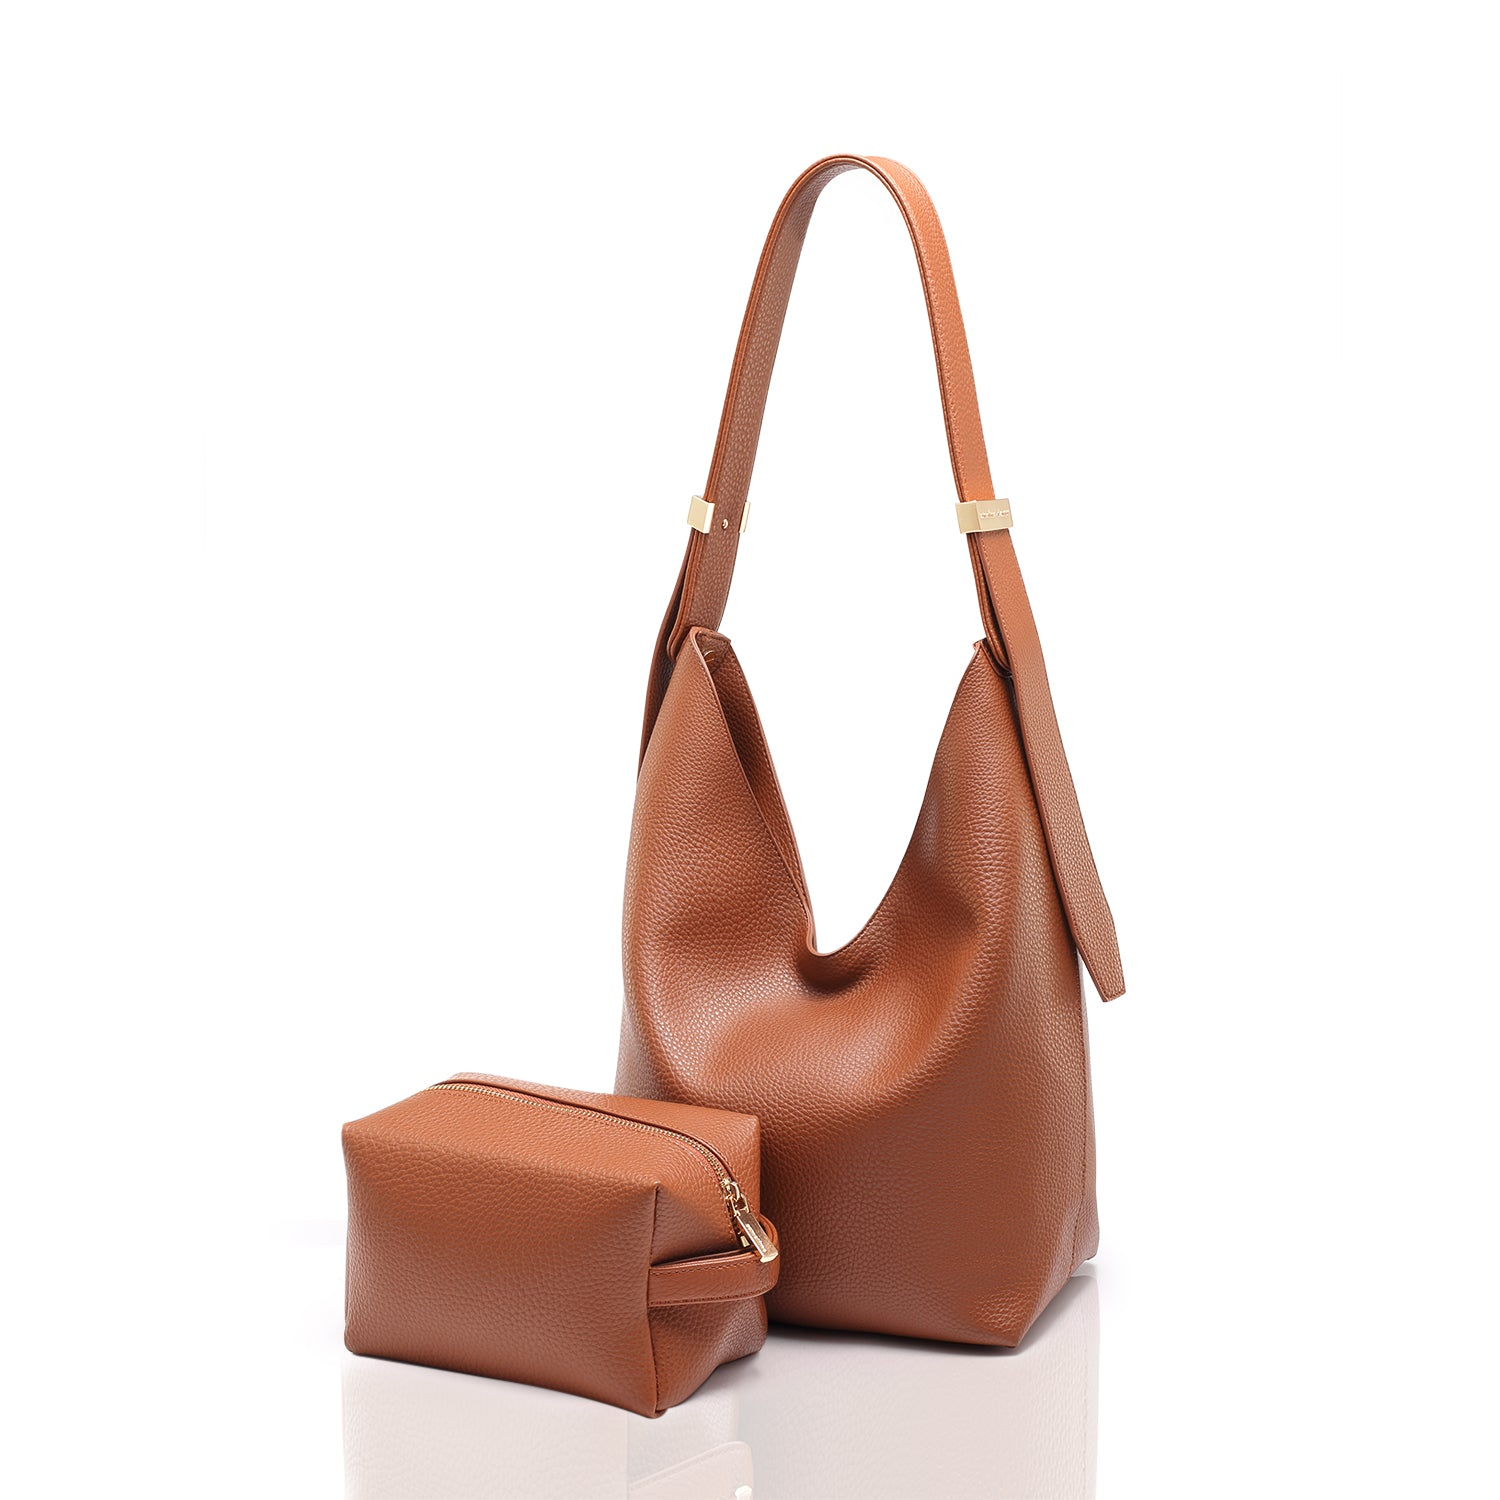 RIBAG HOBO MINI - BROWN